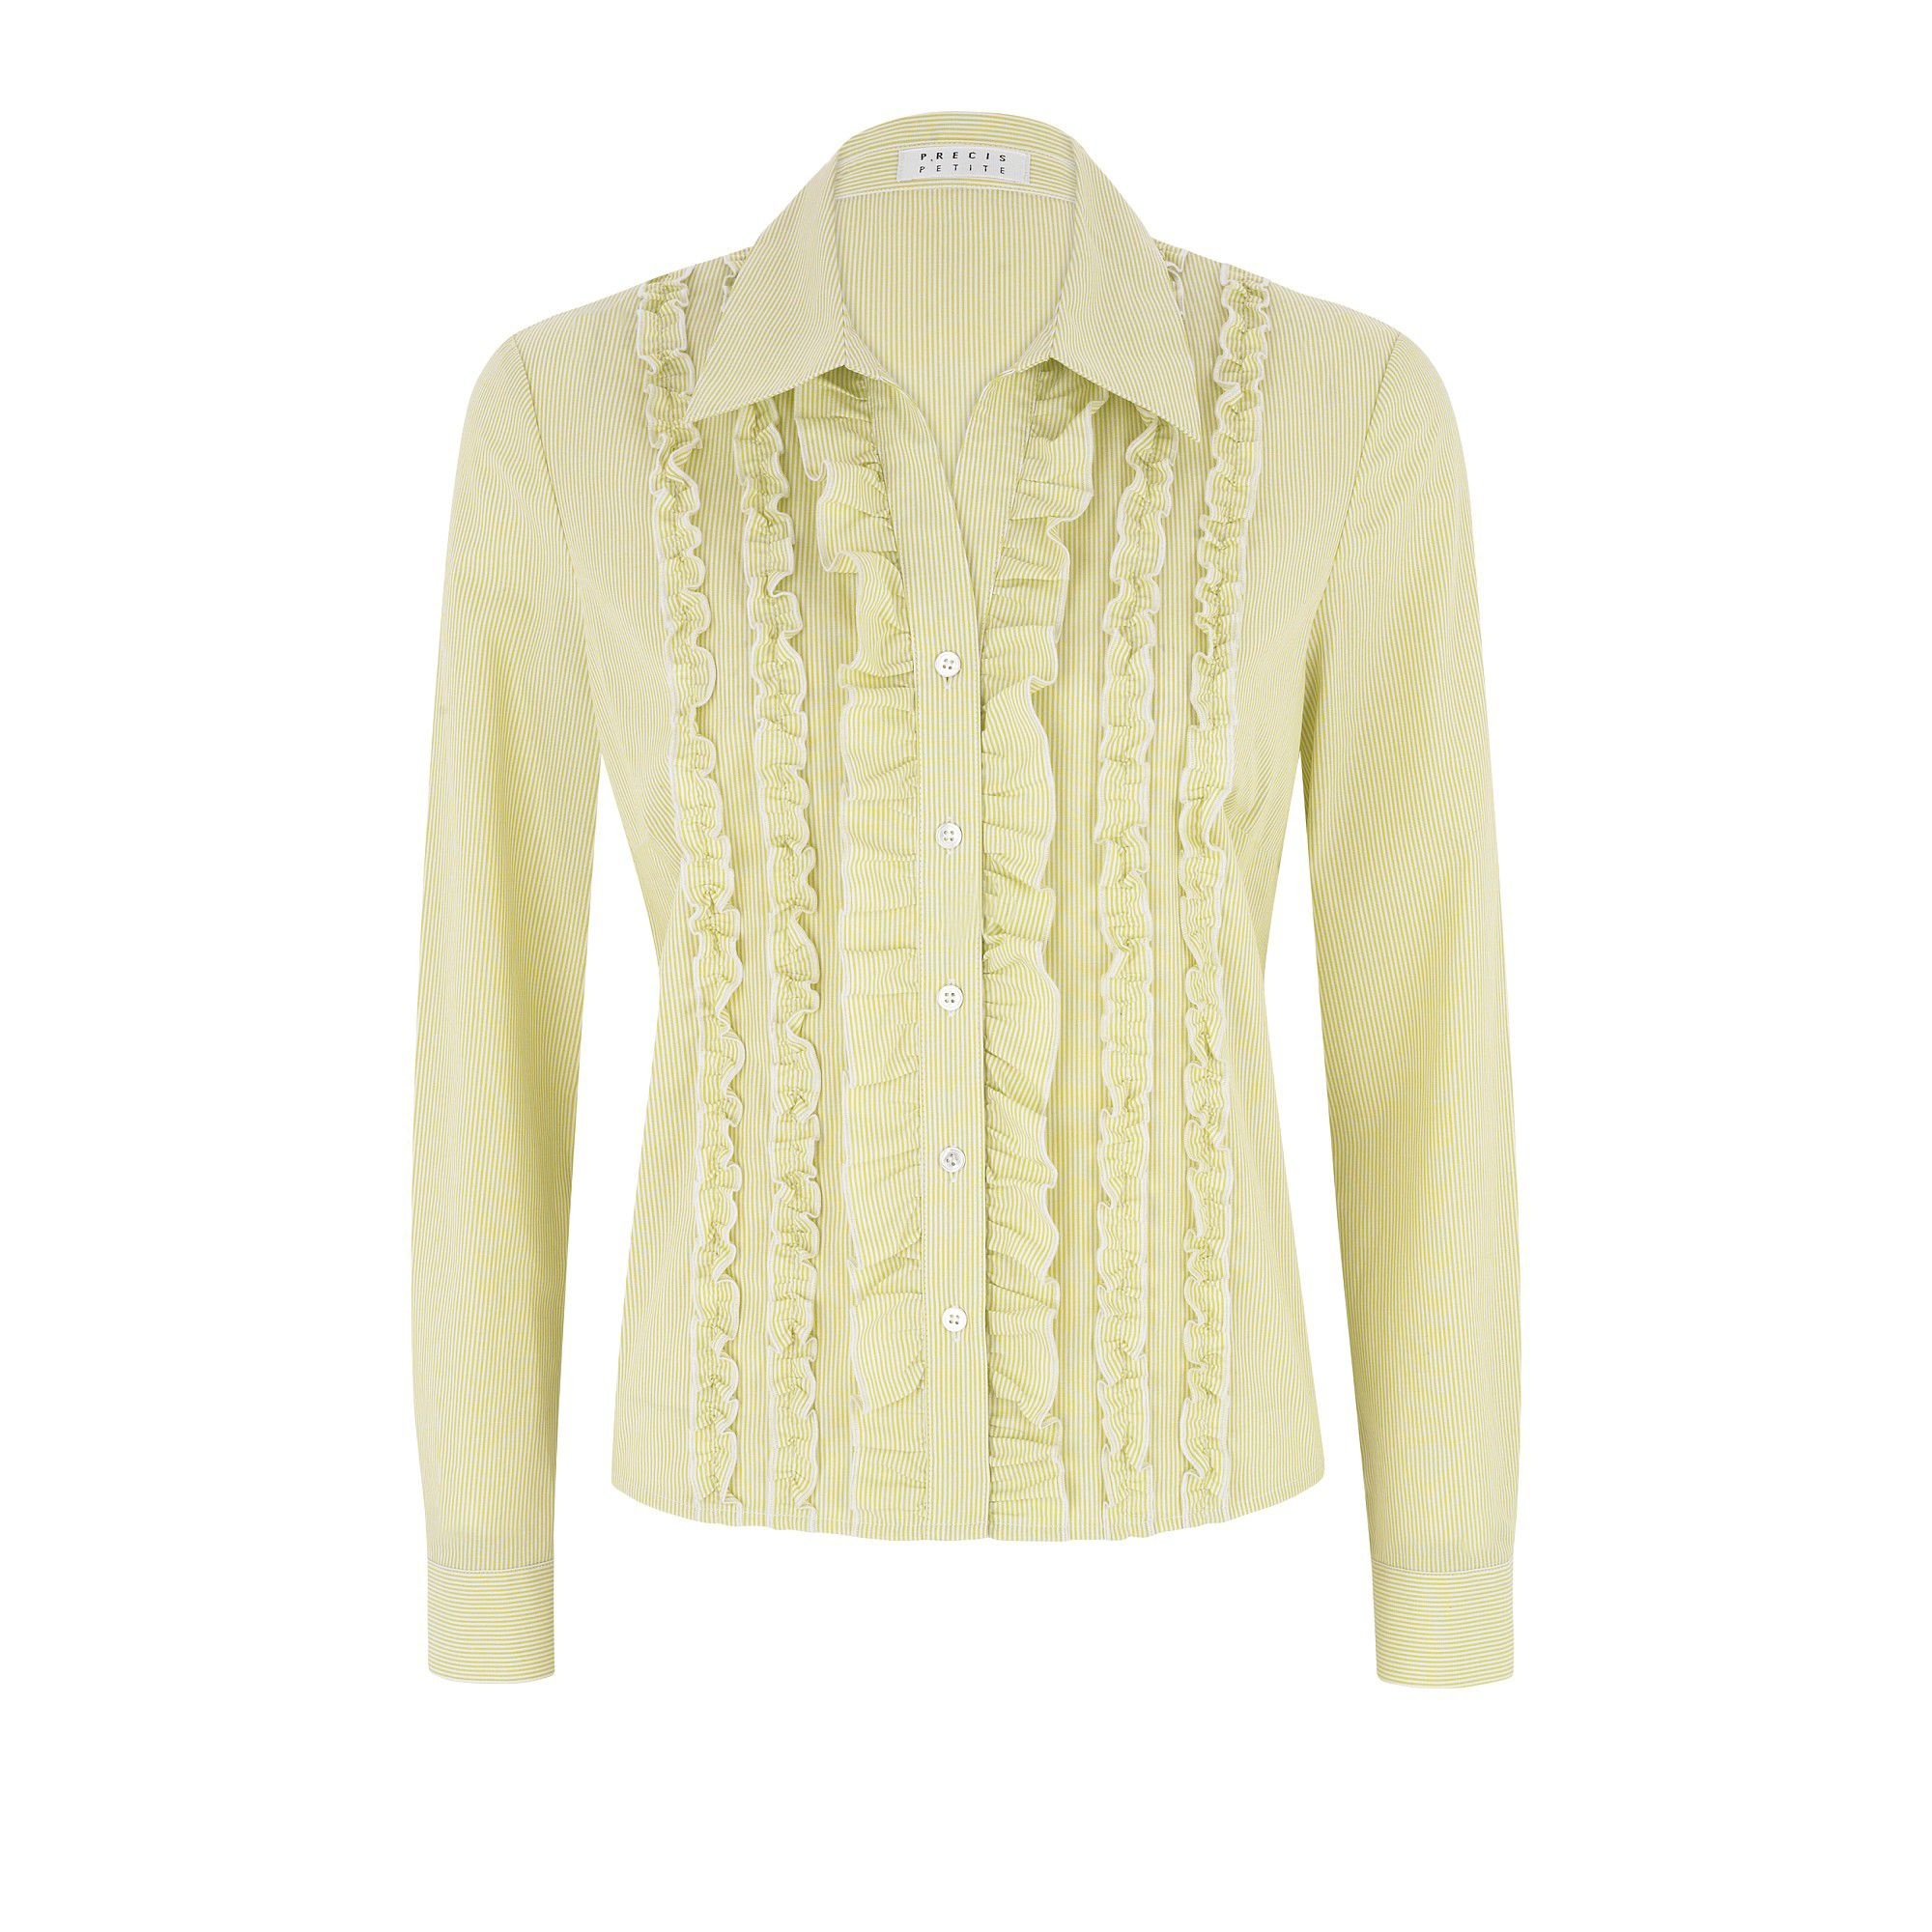 Precis Petite Stripe frill blouse - Yellow 6,6,16,16,14,14 product image